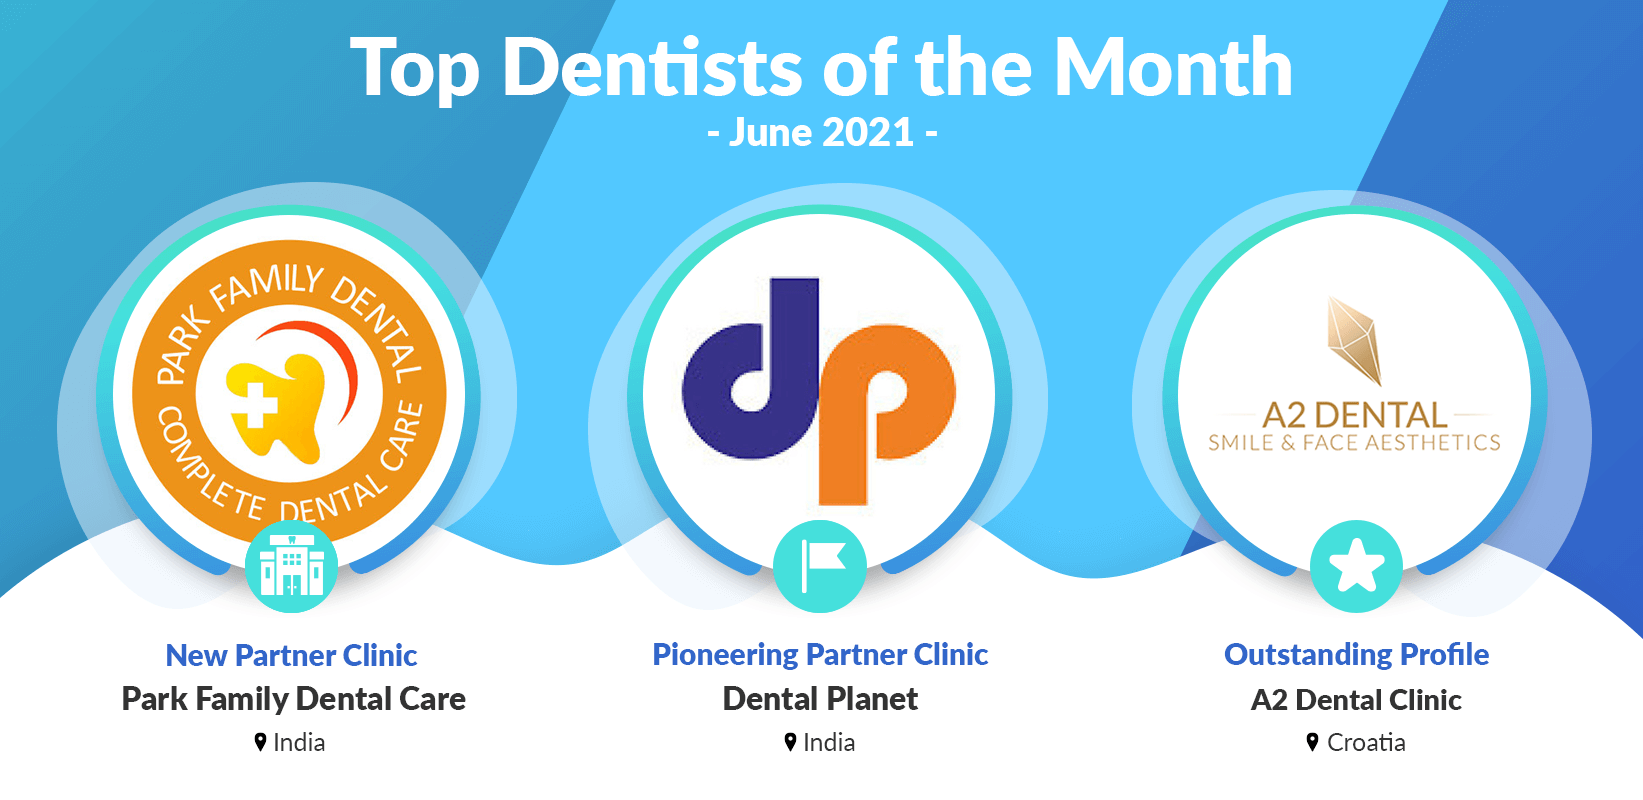 1.June Dentist of the month 2021